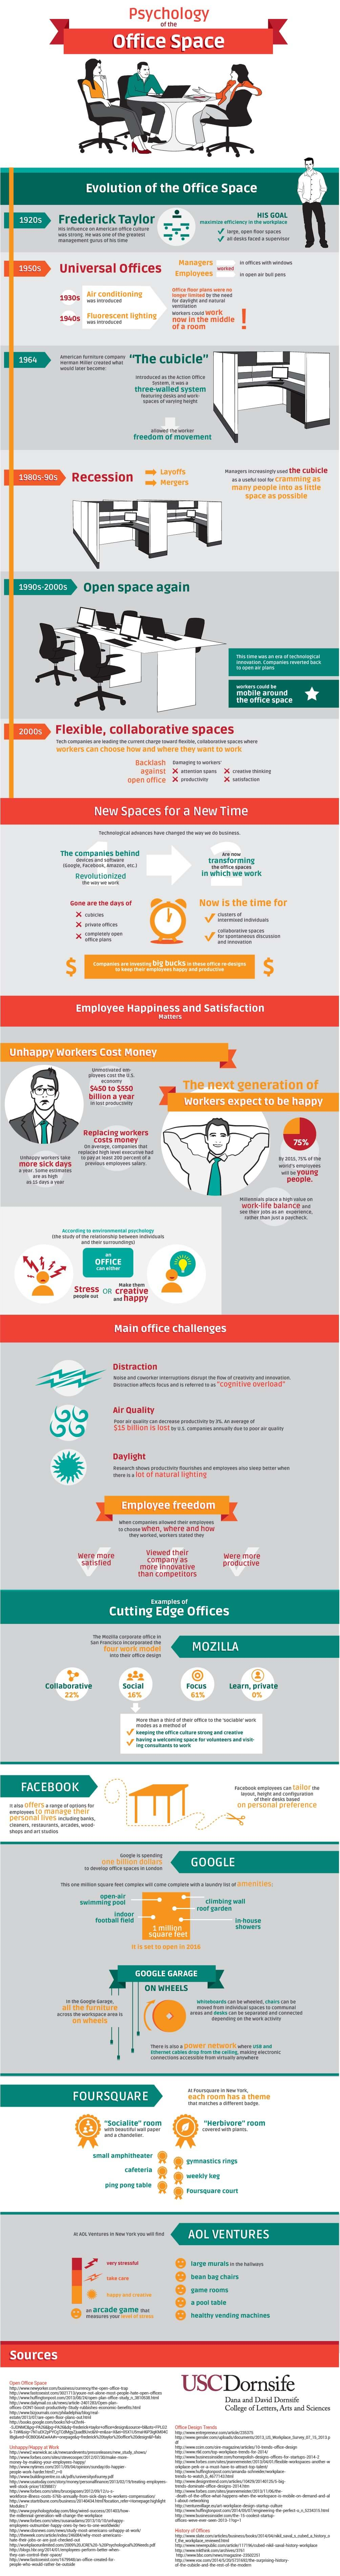 Psychology-Office-Space-infographic